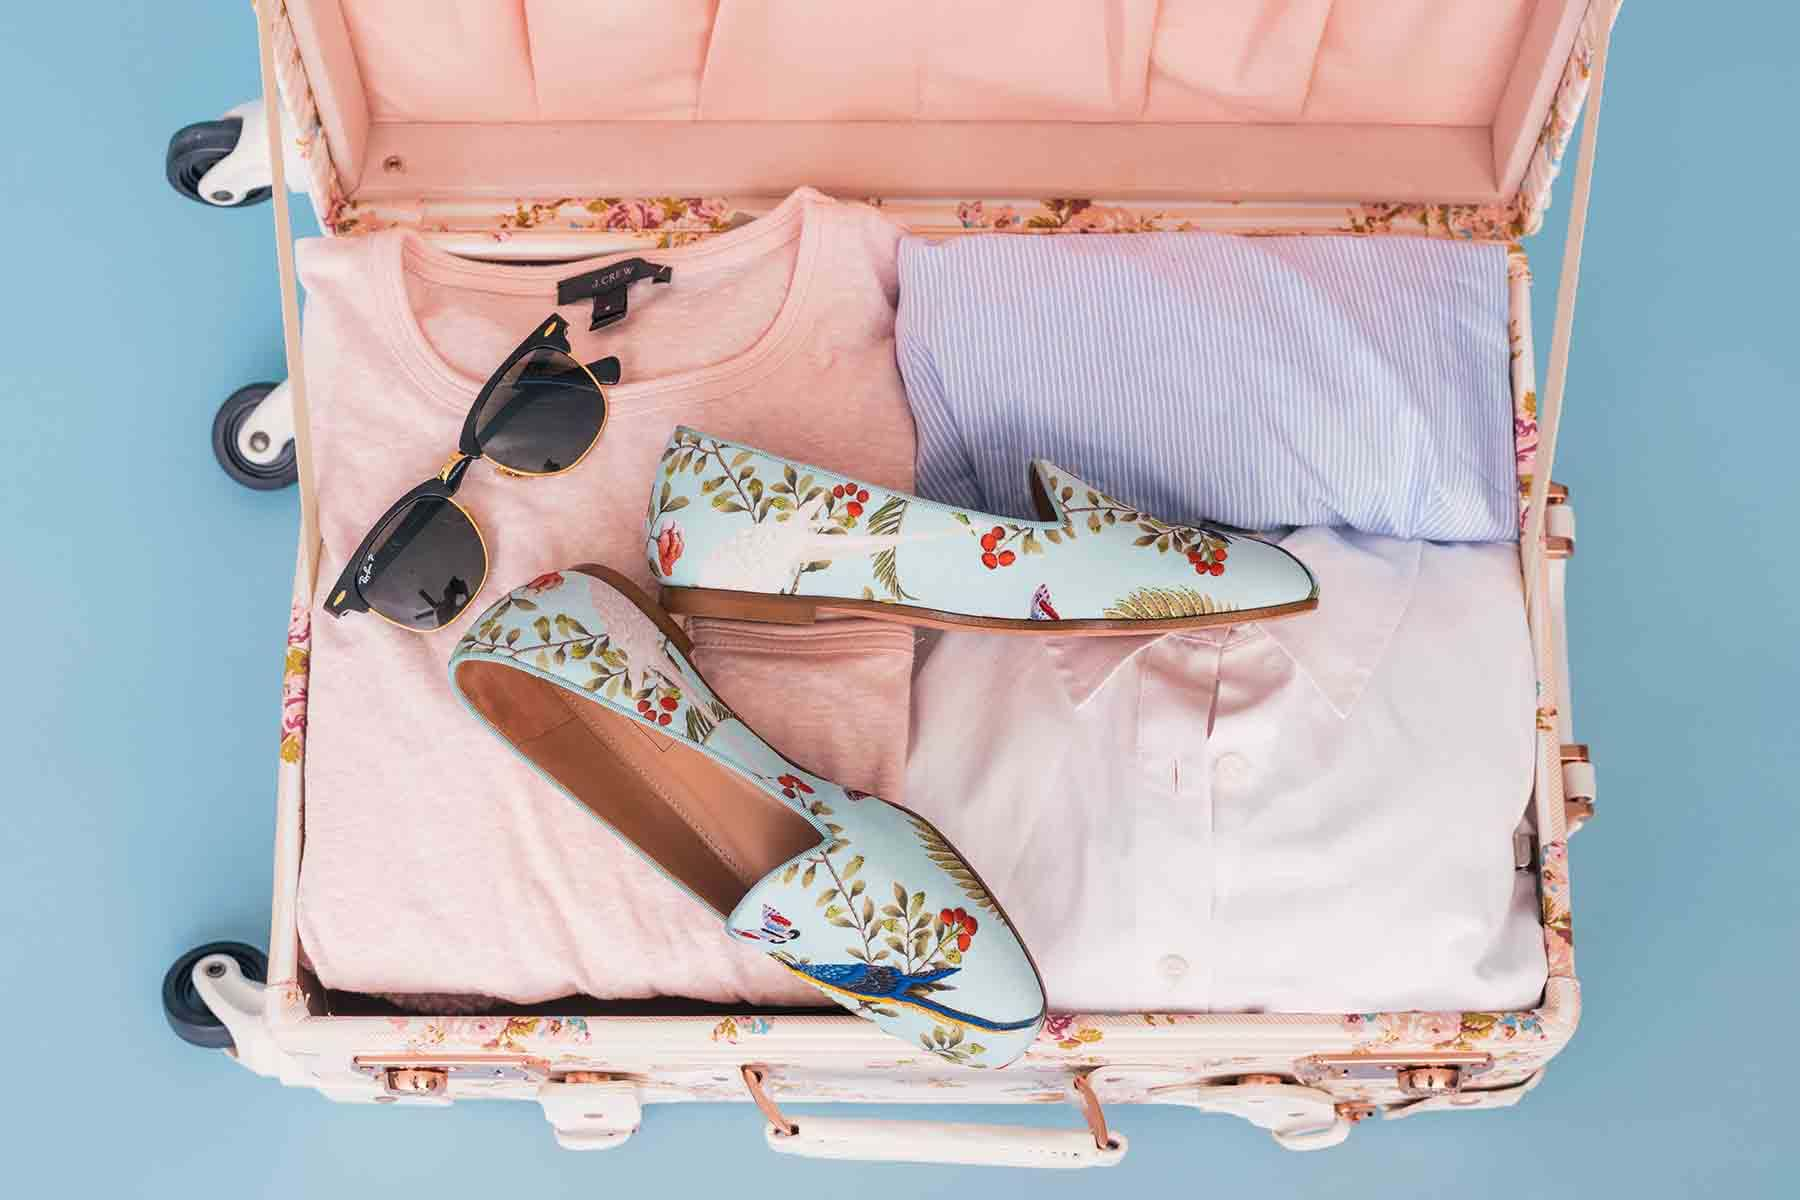 A pink suitcase filled with clothing, shoes, and sunglasses